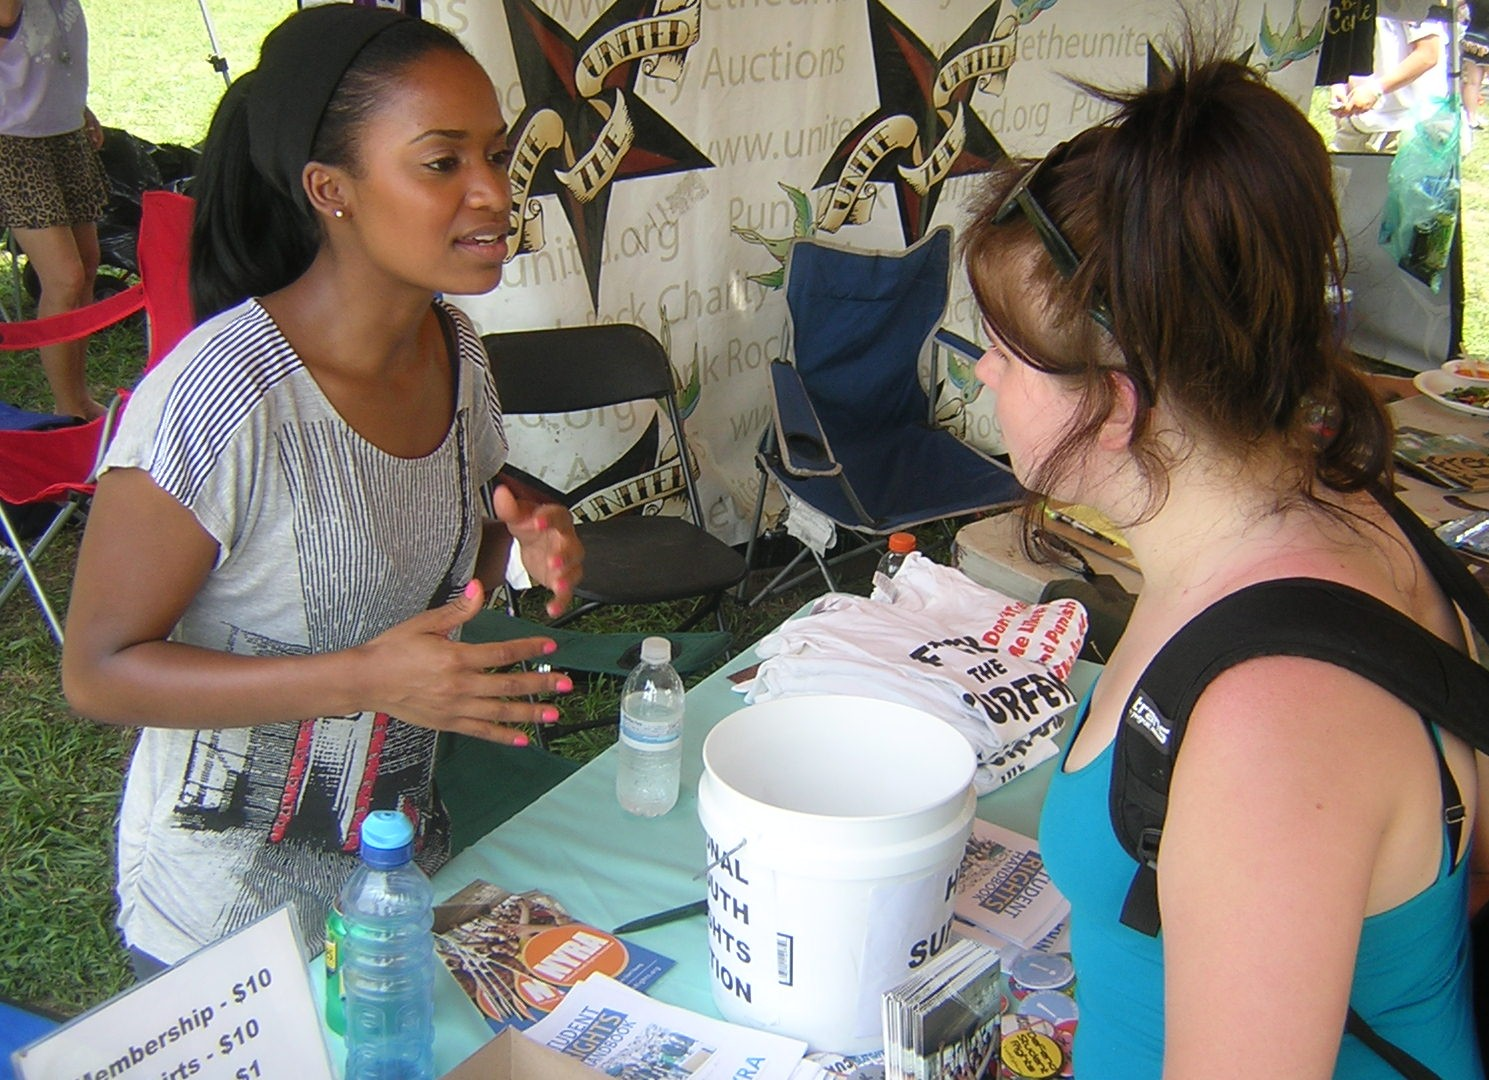 NYRA volunteer speaking to another young person about youth rights during a tabling event